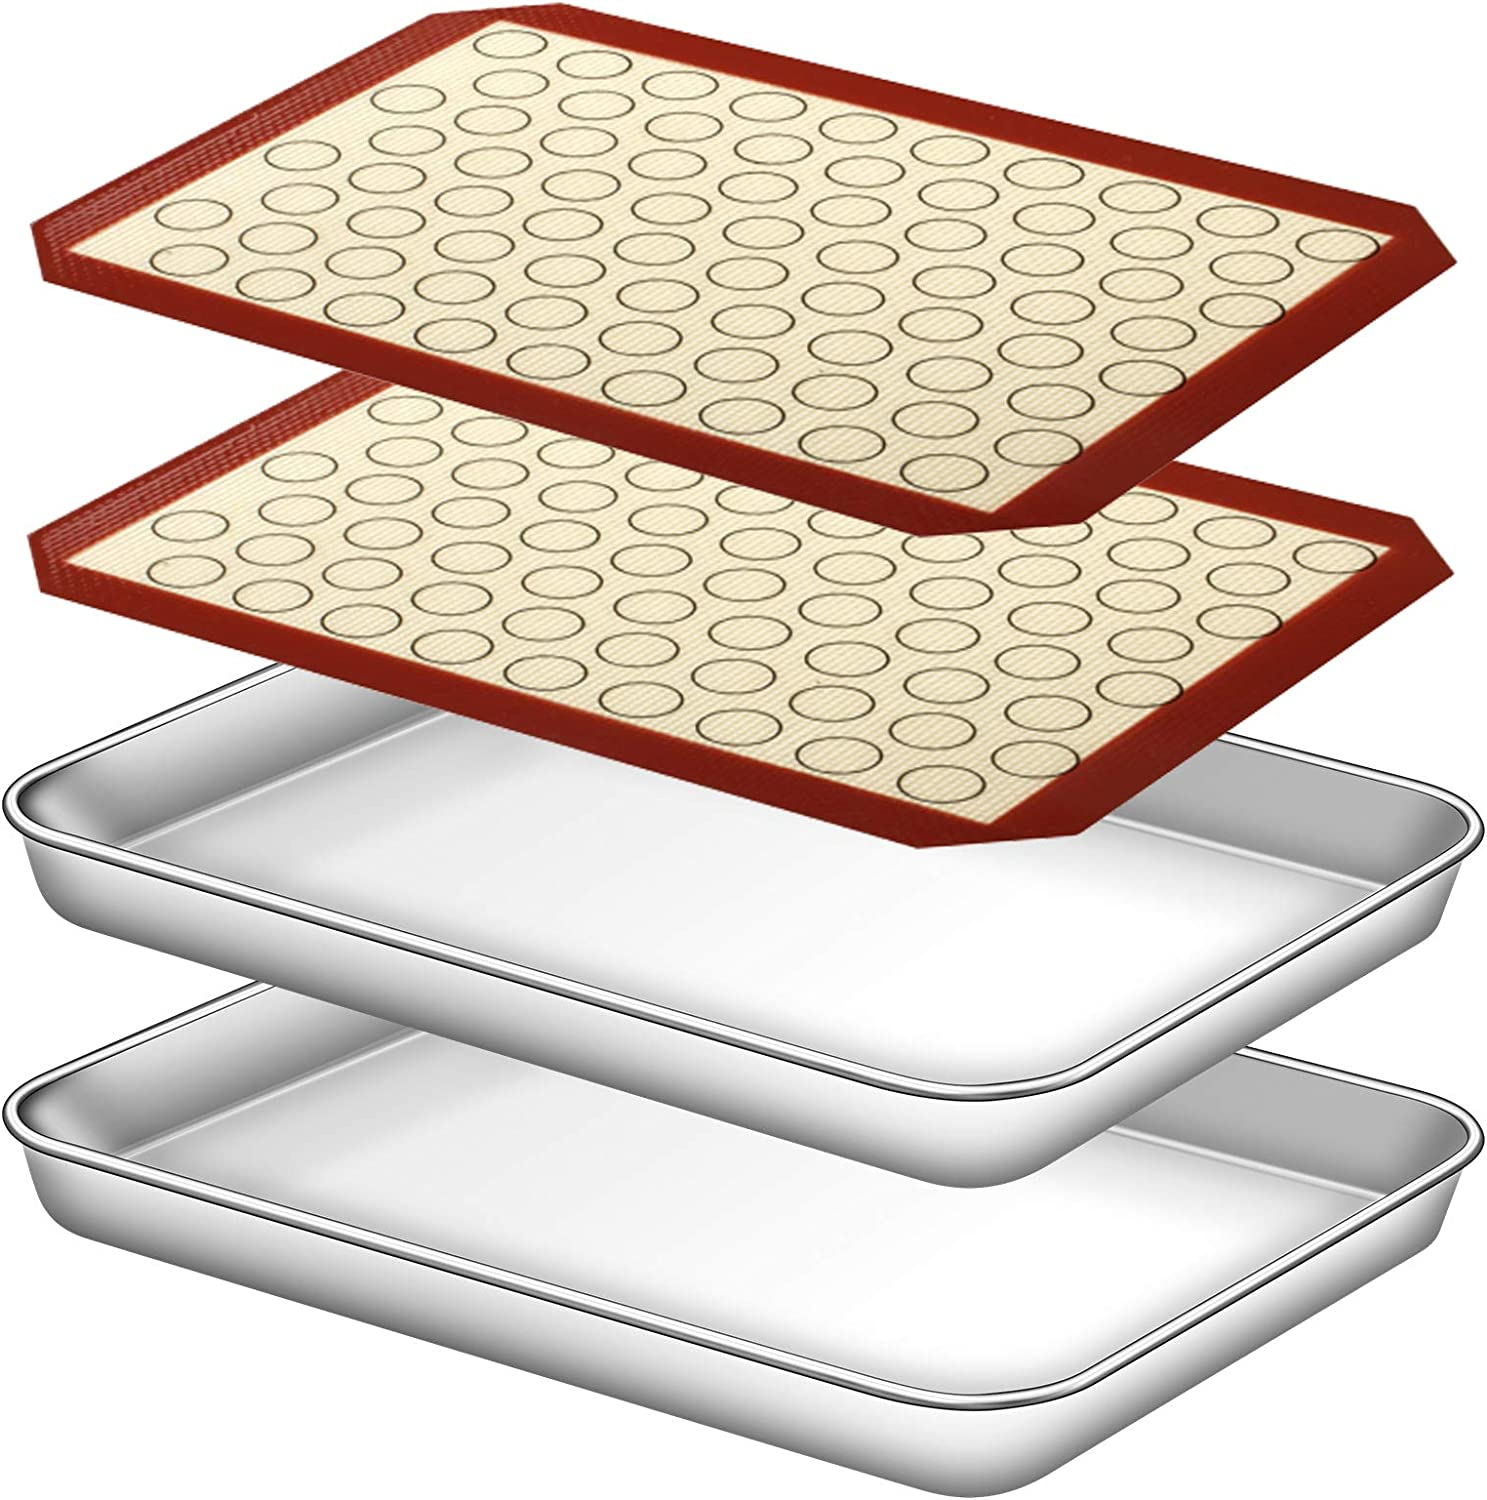 Deedro Baking Sheet with Silicone Mat, Set of 4 [2 Sheets + 2 Mats], Stainless Steel Cookie Sheet Baking Pan with Silicone Baking Mat, 10 x 8 x 1 Inch, Non Toxic, Heavy Duty, Easy Clean